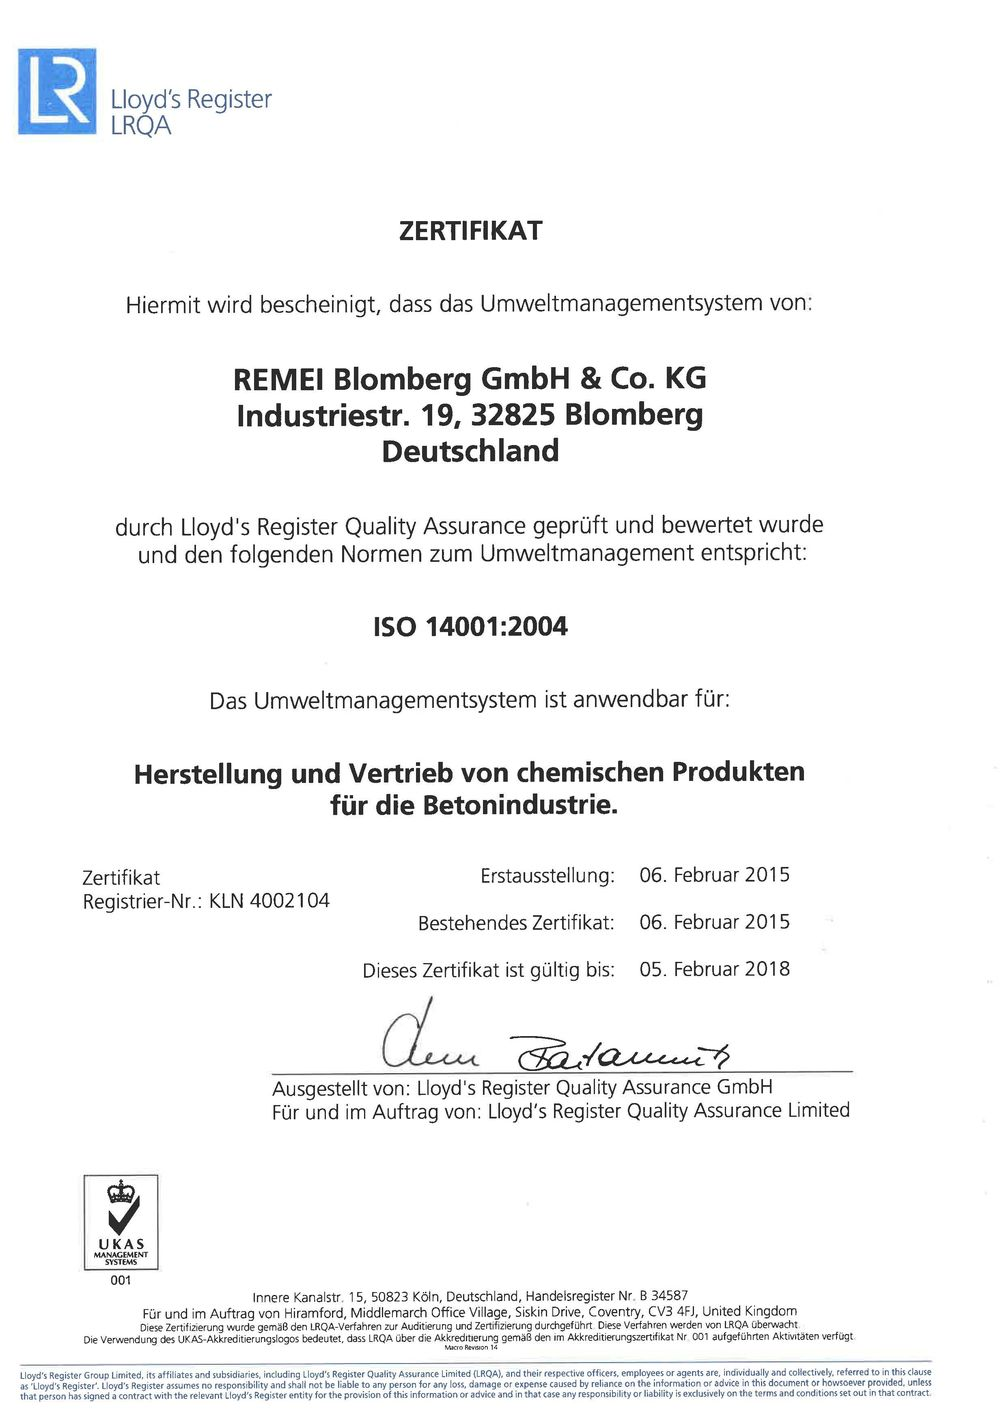 [Translate to Englisch:] ISO 14001:2004 Zertifikat